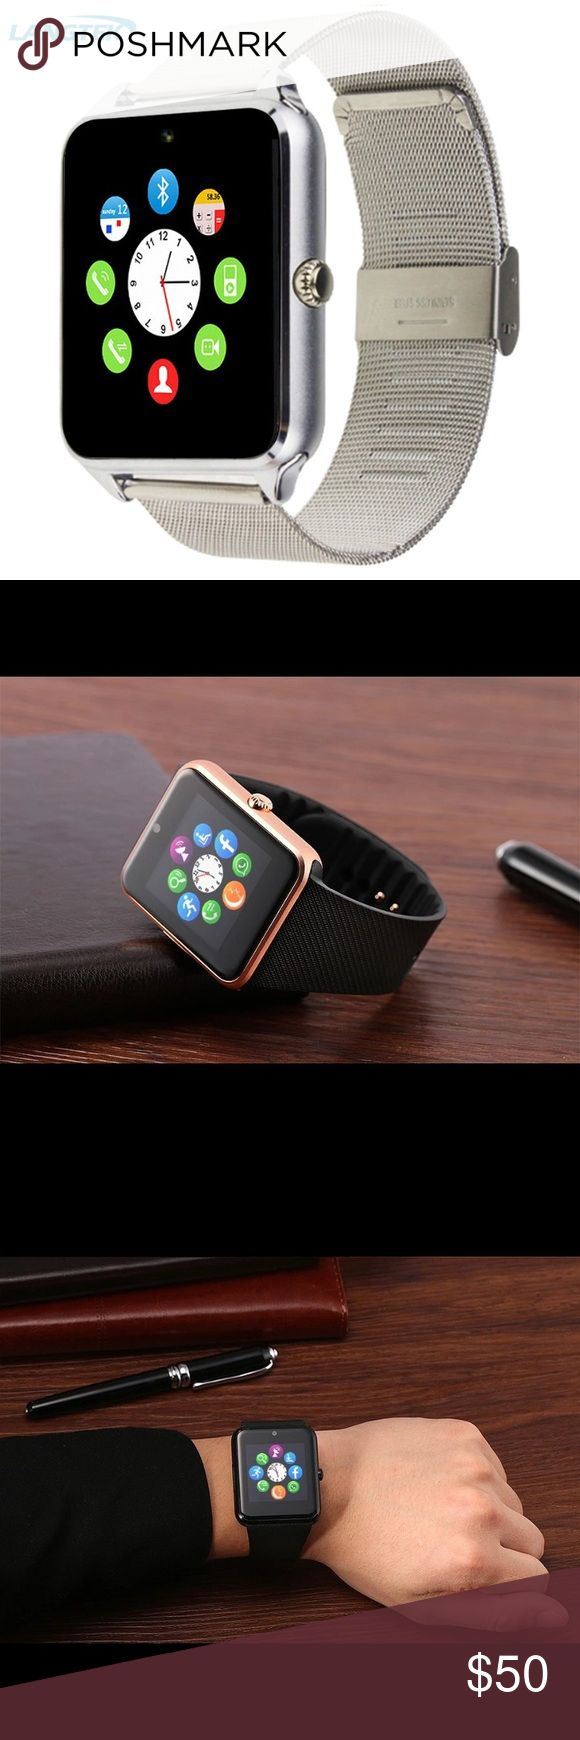 Android or Apple OS Smart Watch Brand New!  Langtek Z60 Smart Watch Android Watch With Push Message Support SIM SD Card Mp3 Fashion Bluetooth Wearable Devices For Apple IOS Specifics Functions: Answer Call,Big Three Needles,Week,Tourbillon,Noctilucent,Month,Moisture Measurement,Phase of the Moon,Message Reminder,Mood Tracker,Sleep Tracker,Call Reminder,Passometer,Thermometer,24 hour instruction,World Time,Fitness Tracker. Size is 1.5in diameter silver metal band Accessories Watches